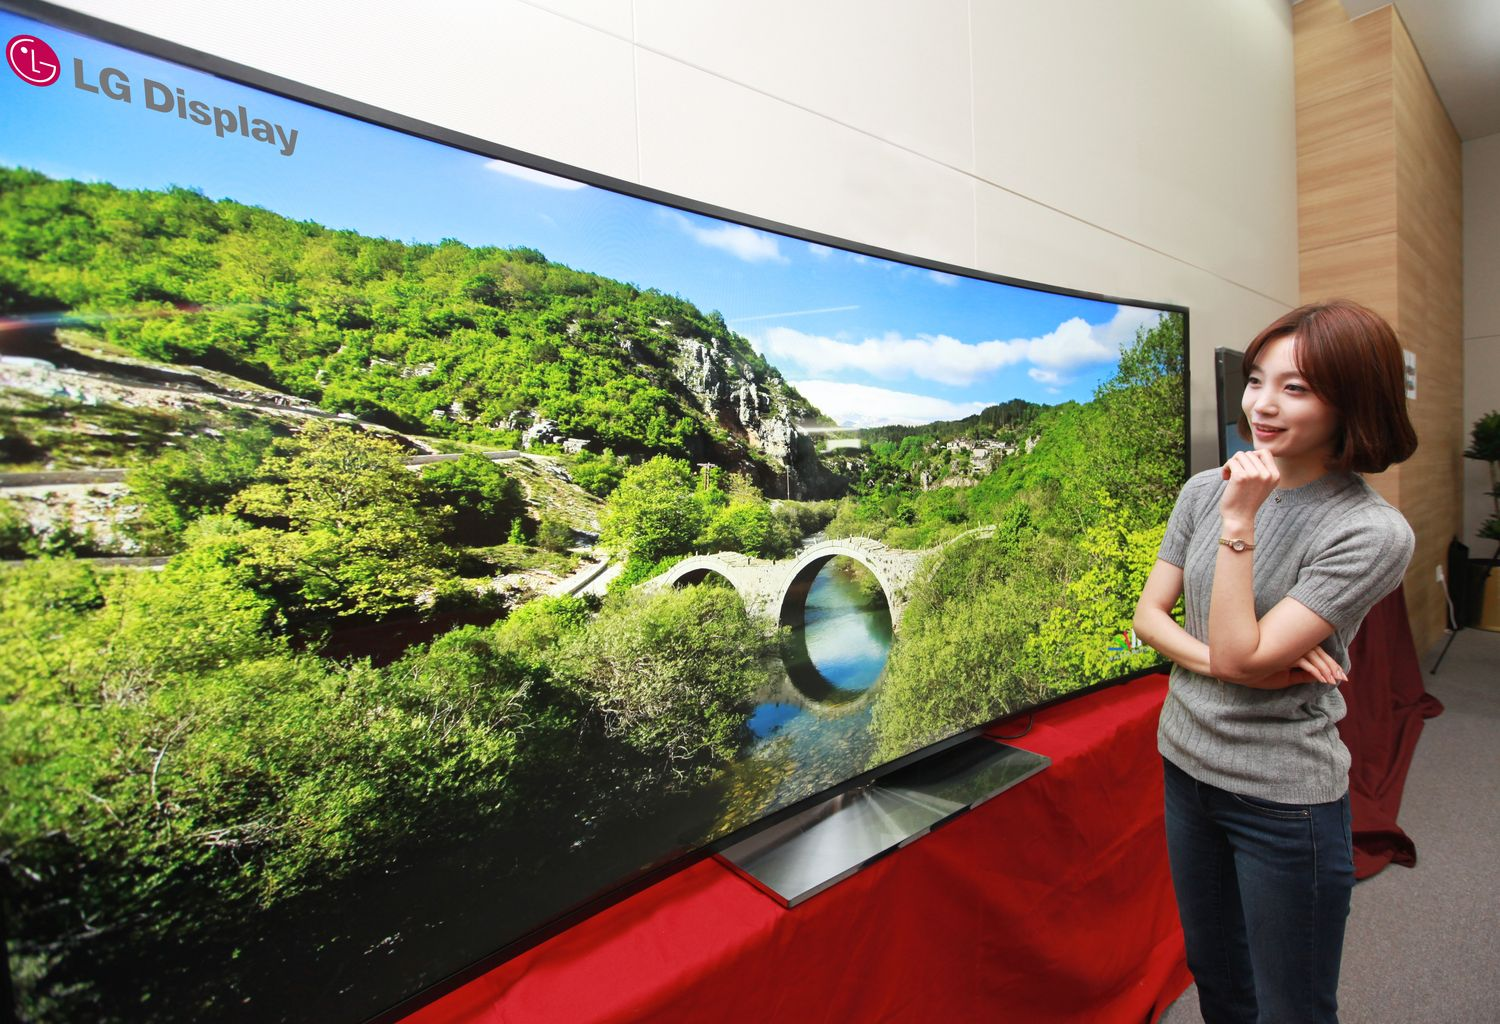 5021623e0ae LG unveiled 105-inch mammoth 4K UHD TV with curved screen